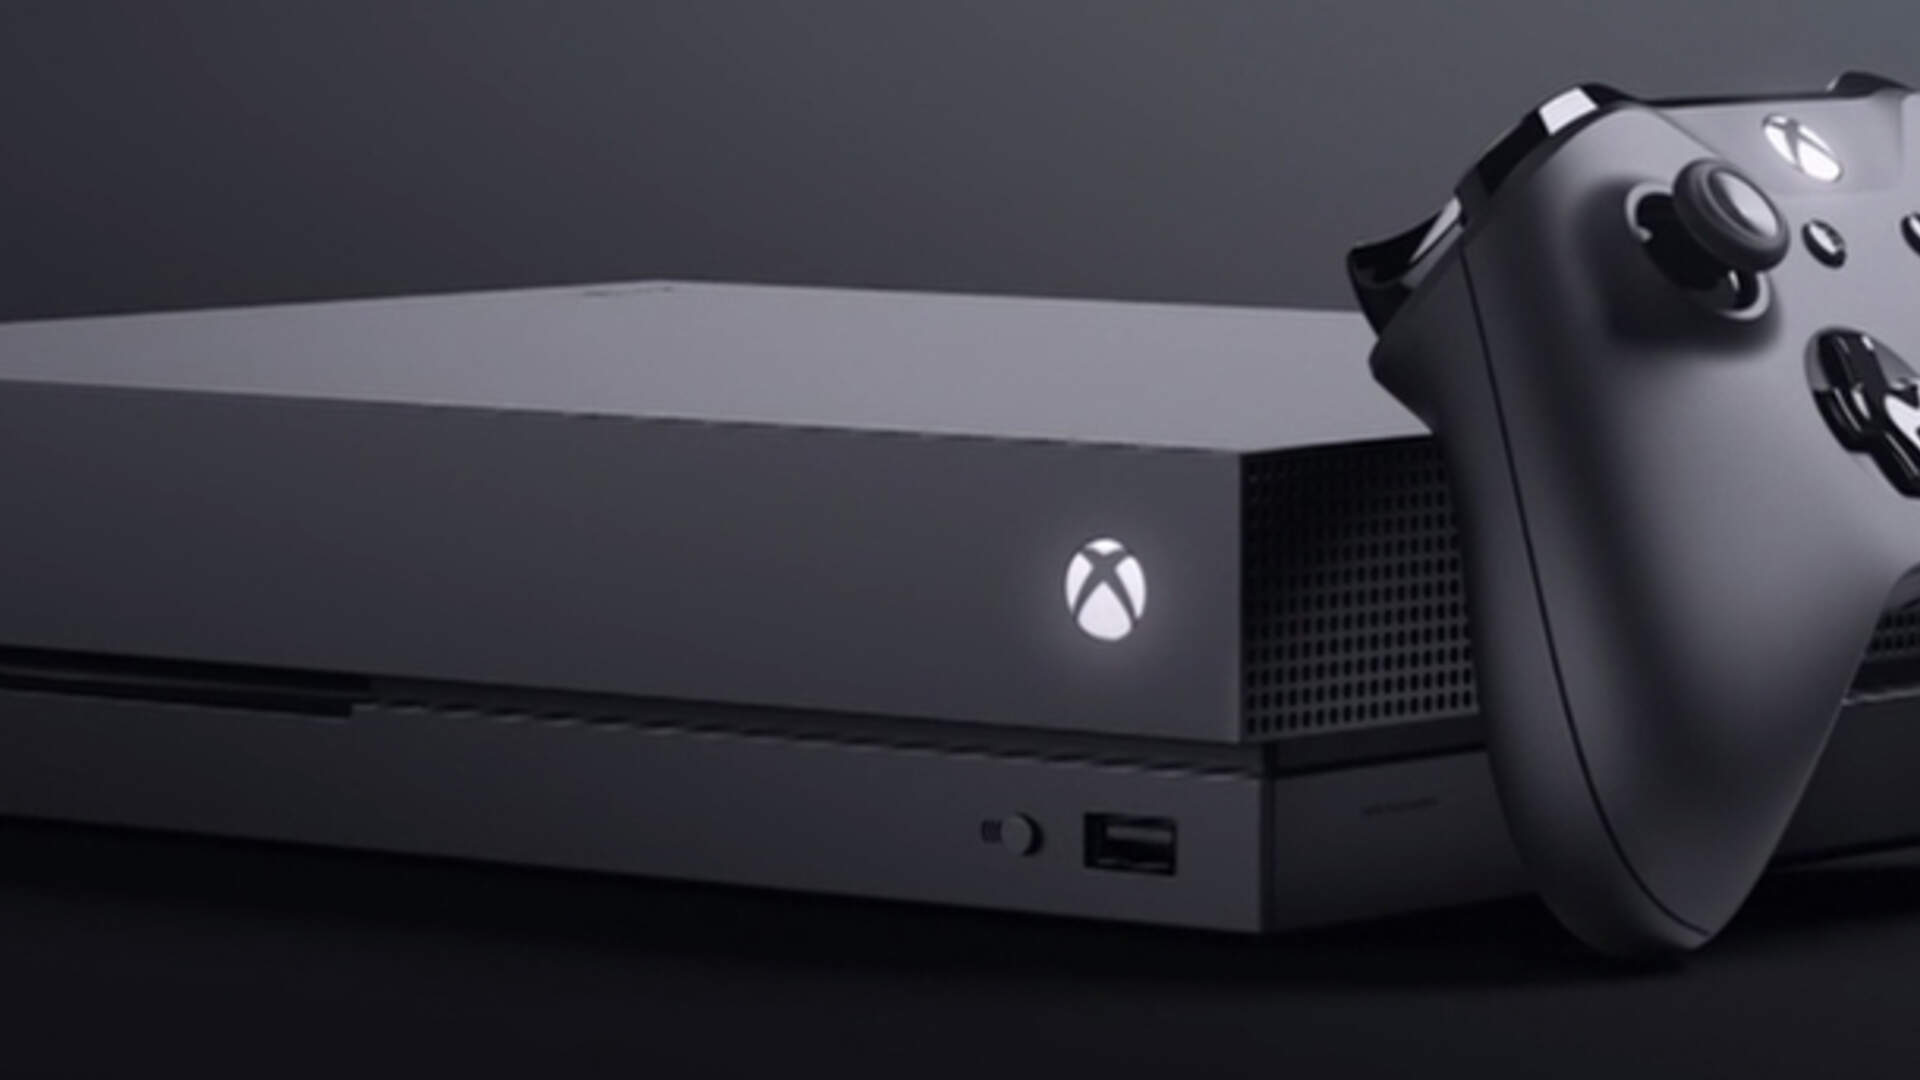 The Internet Reacts to the Xbox One X $499 Price